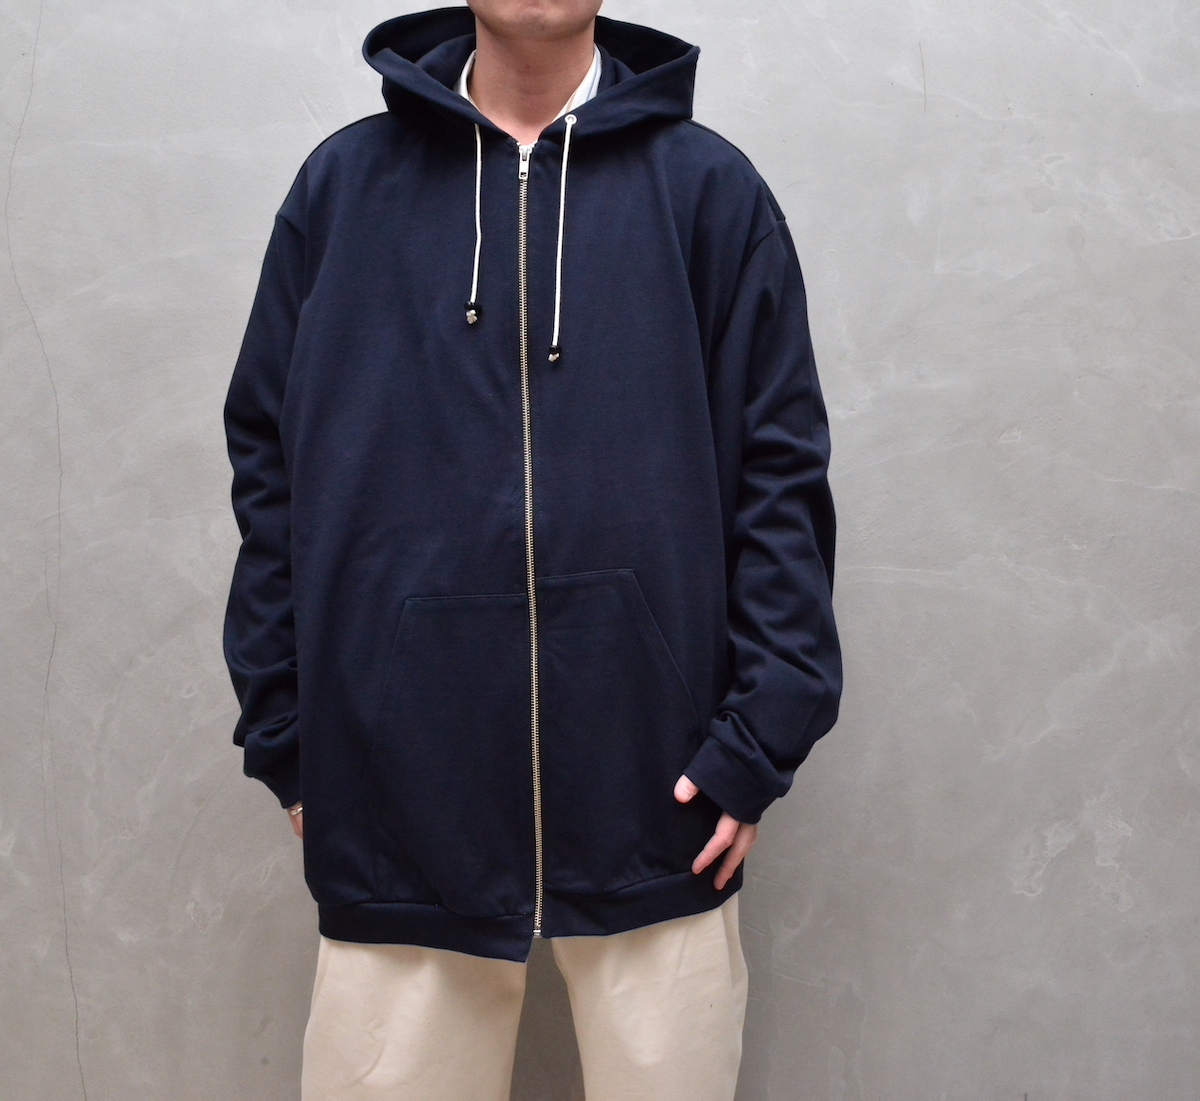 CAMIEL FORTGENS 「 11.08.10 HOODED SWEATER VEST JERSEY 」